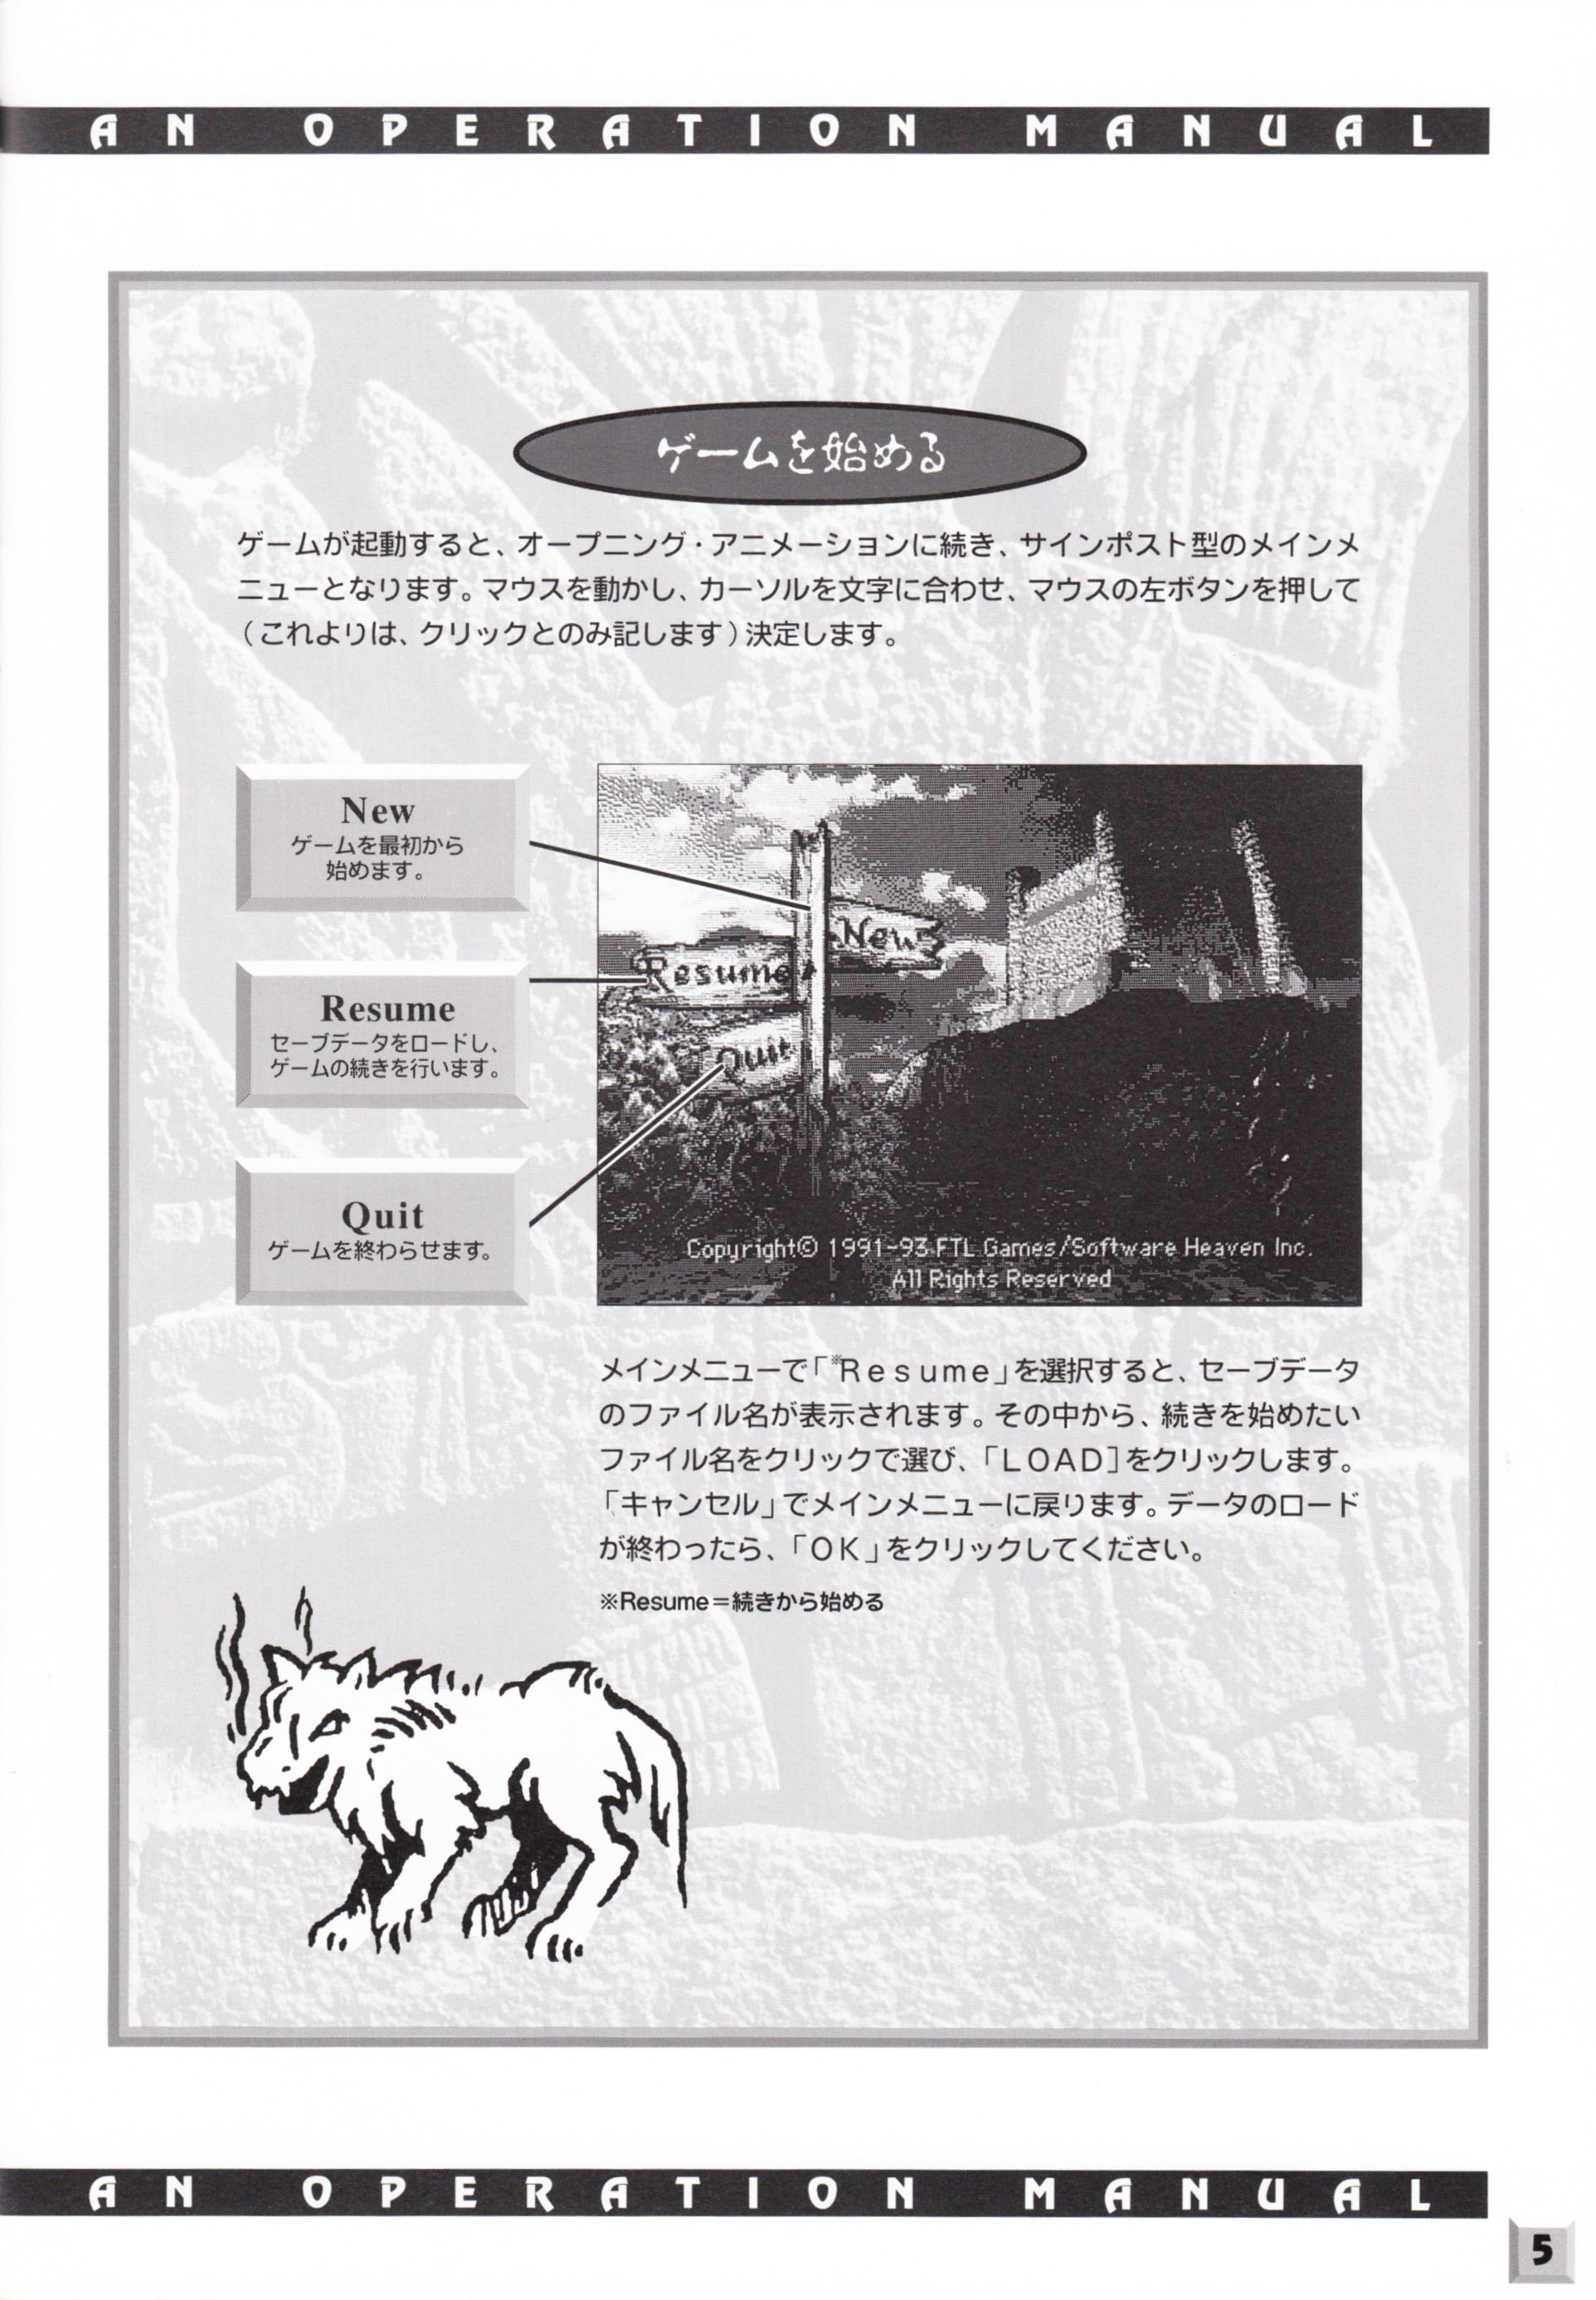 Game - Dungeon Master II - JP - PC-9801 - 3.5-inch - An Operation Manual - Page 007 - Scan